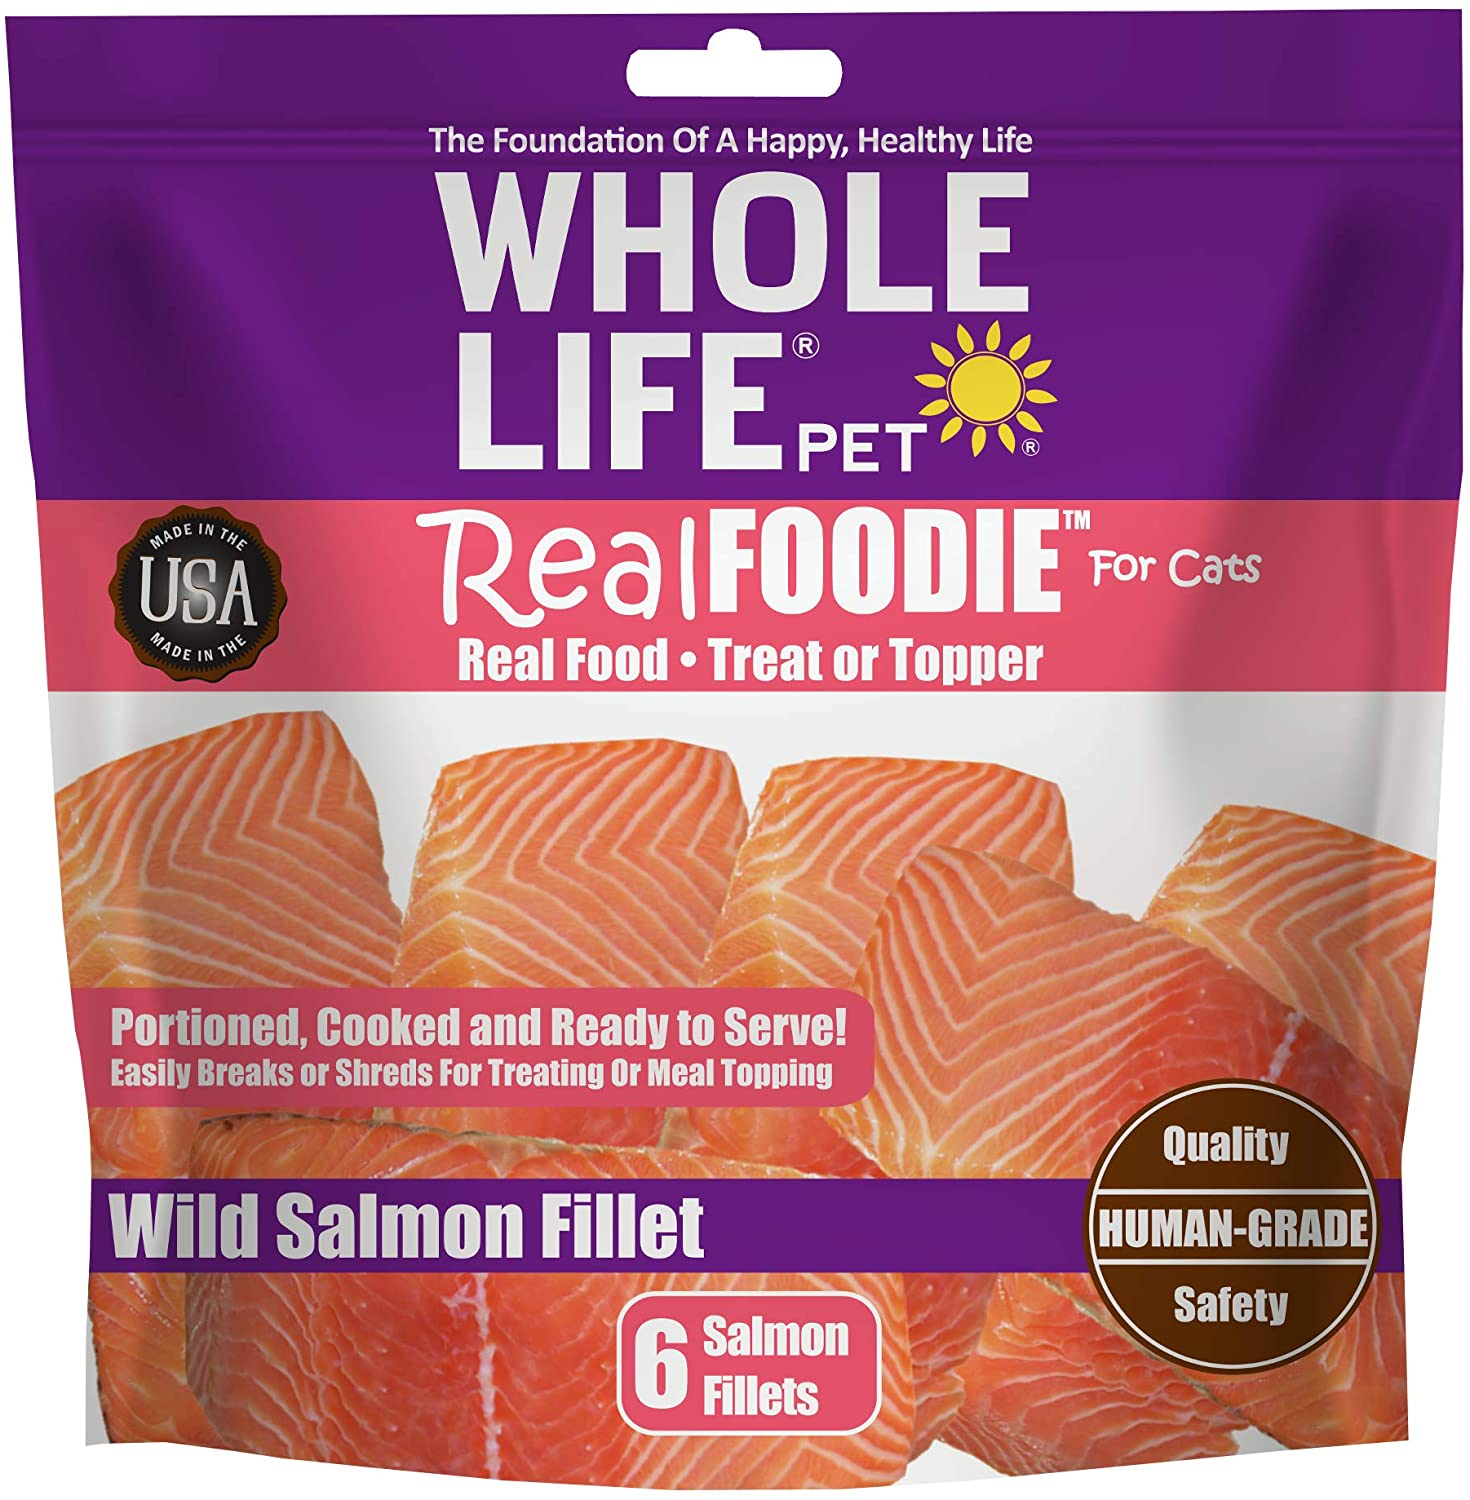 Whole Life Pet RealFoodie USA Sourced and Produced Freeze Dried Whole Boneless, Skinless Wild Tuna Fillet Treat or Meal Mixer for Cats